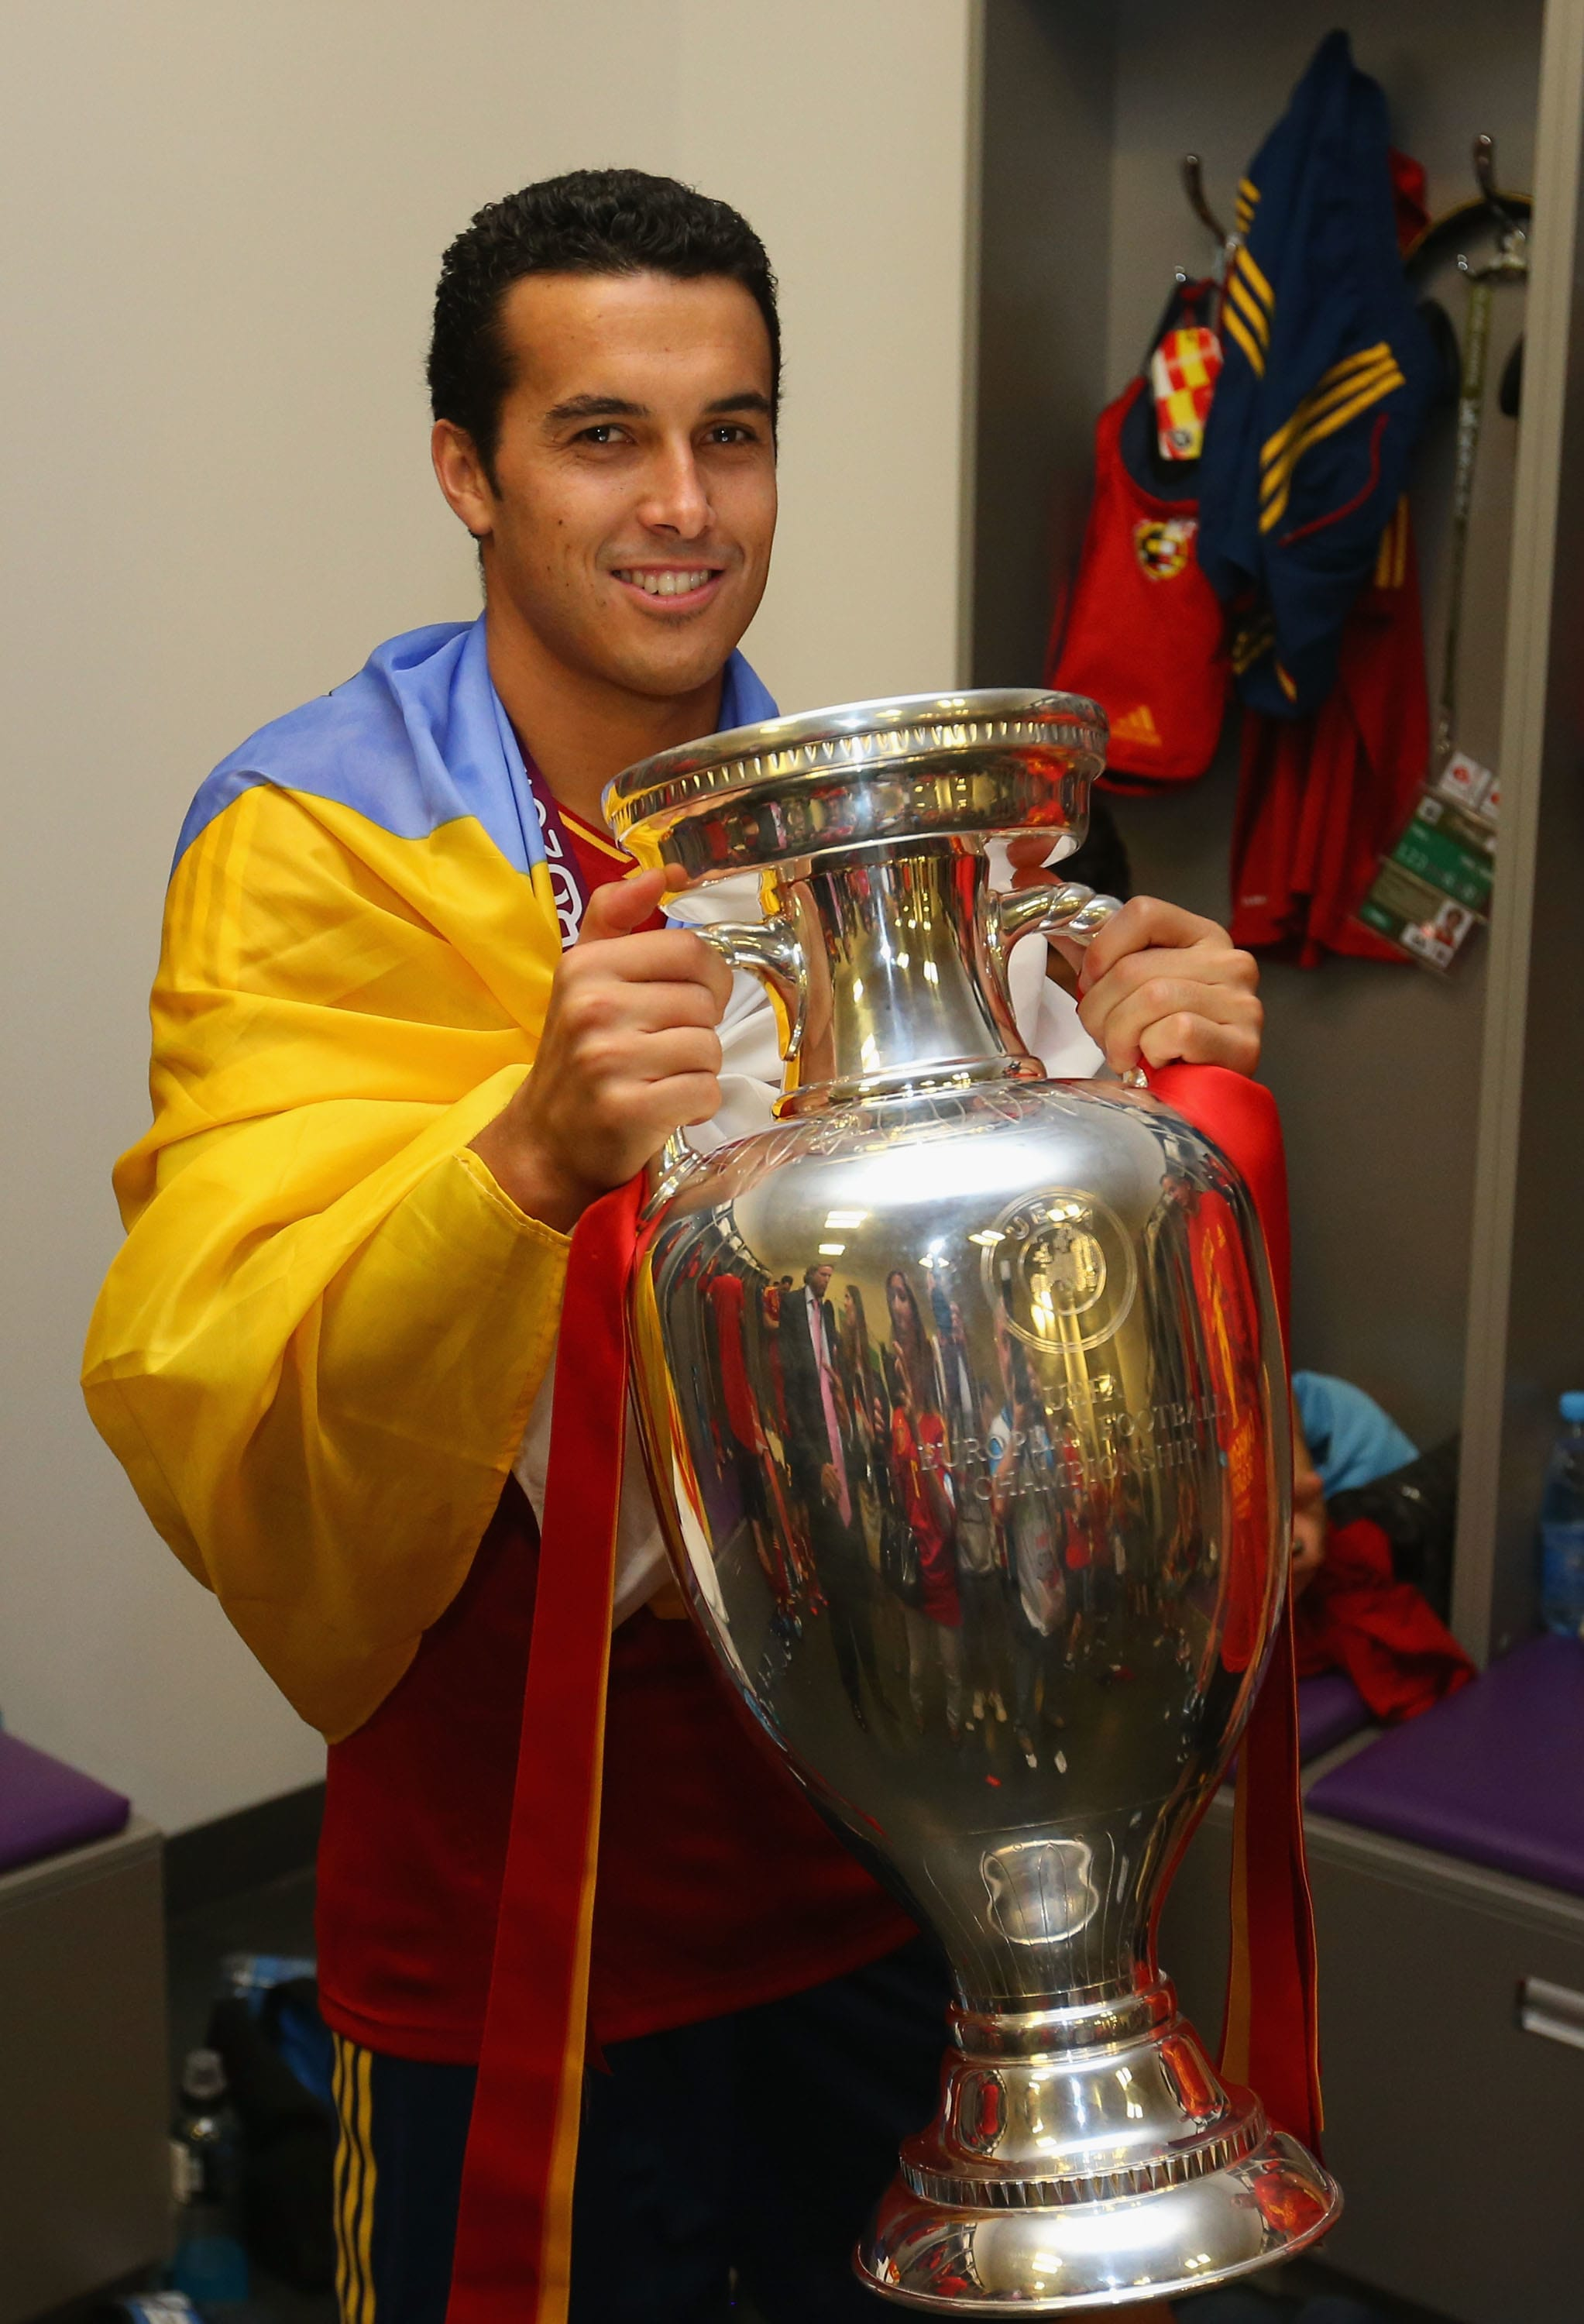 Pedro with the European Championships trophy in 2012